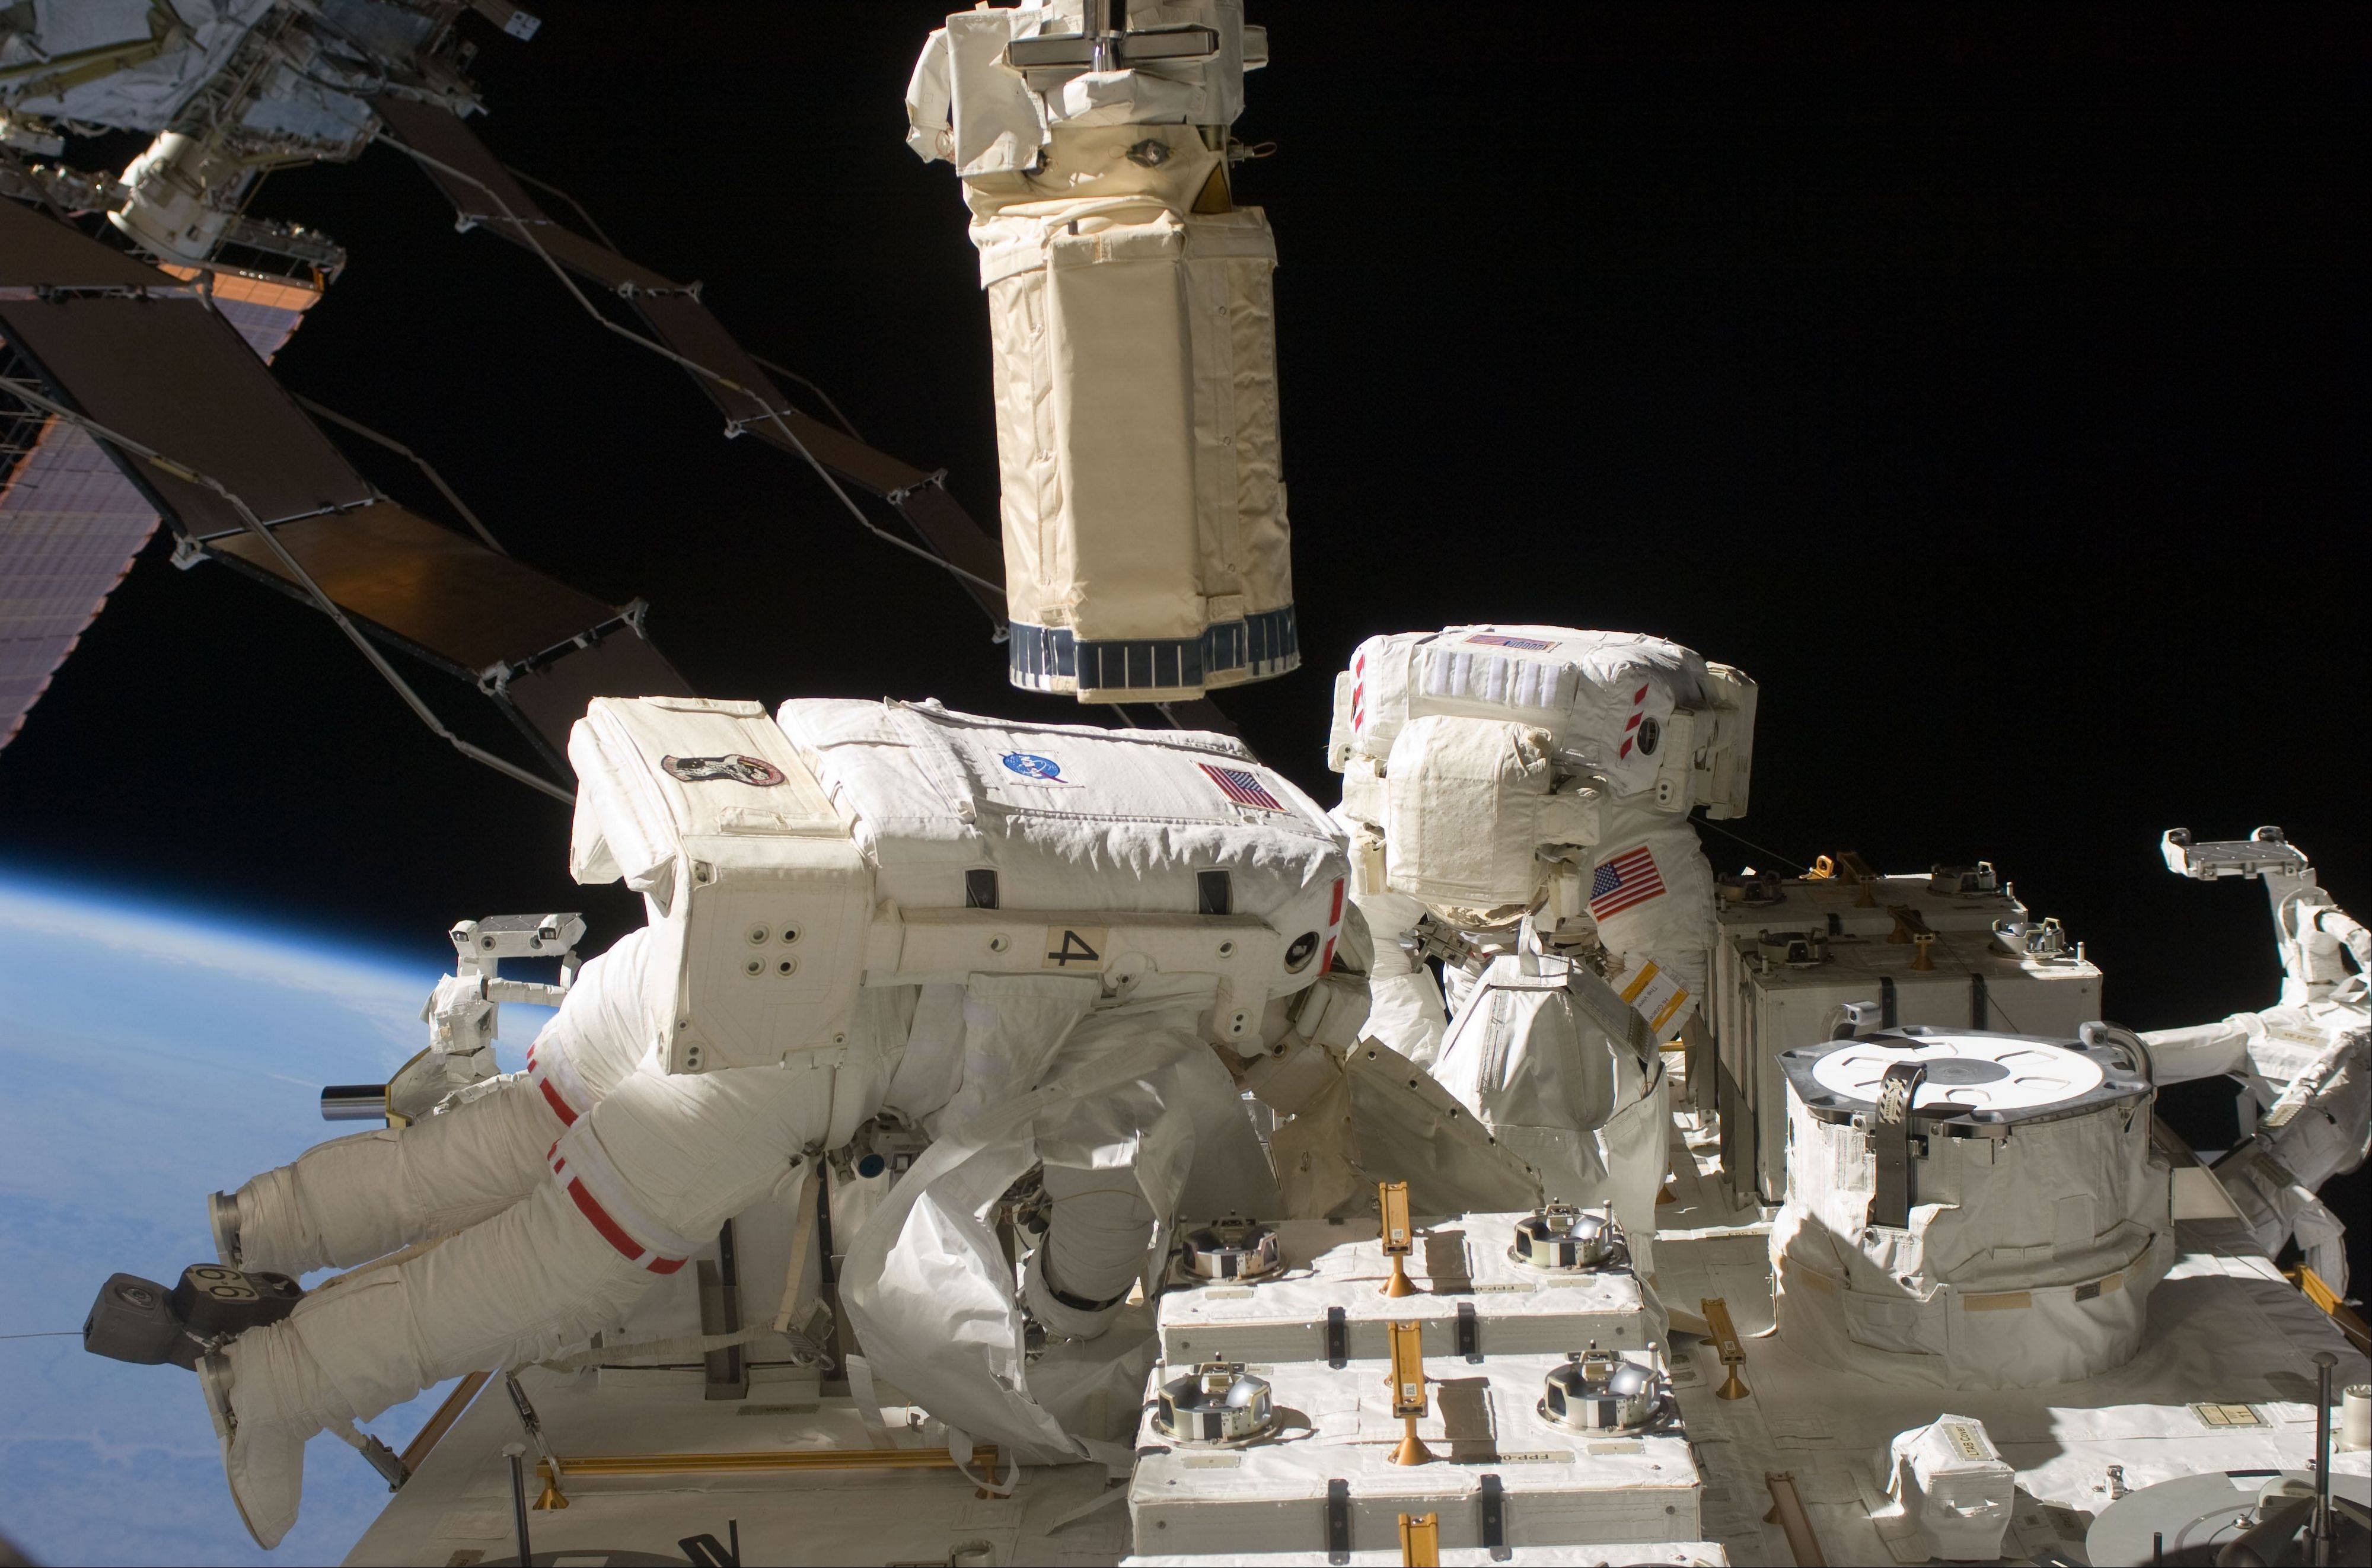 Associated Press/July 27, 2009Astronauts Tom Marshburn, left, and Christopher Cassidy participate in a spacewalk for maintenance tasks. On Friday the two astronauts are preparing for a possible impromptu spacewalk to work on a leaking ammonia coolant line.